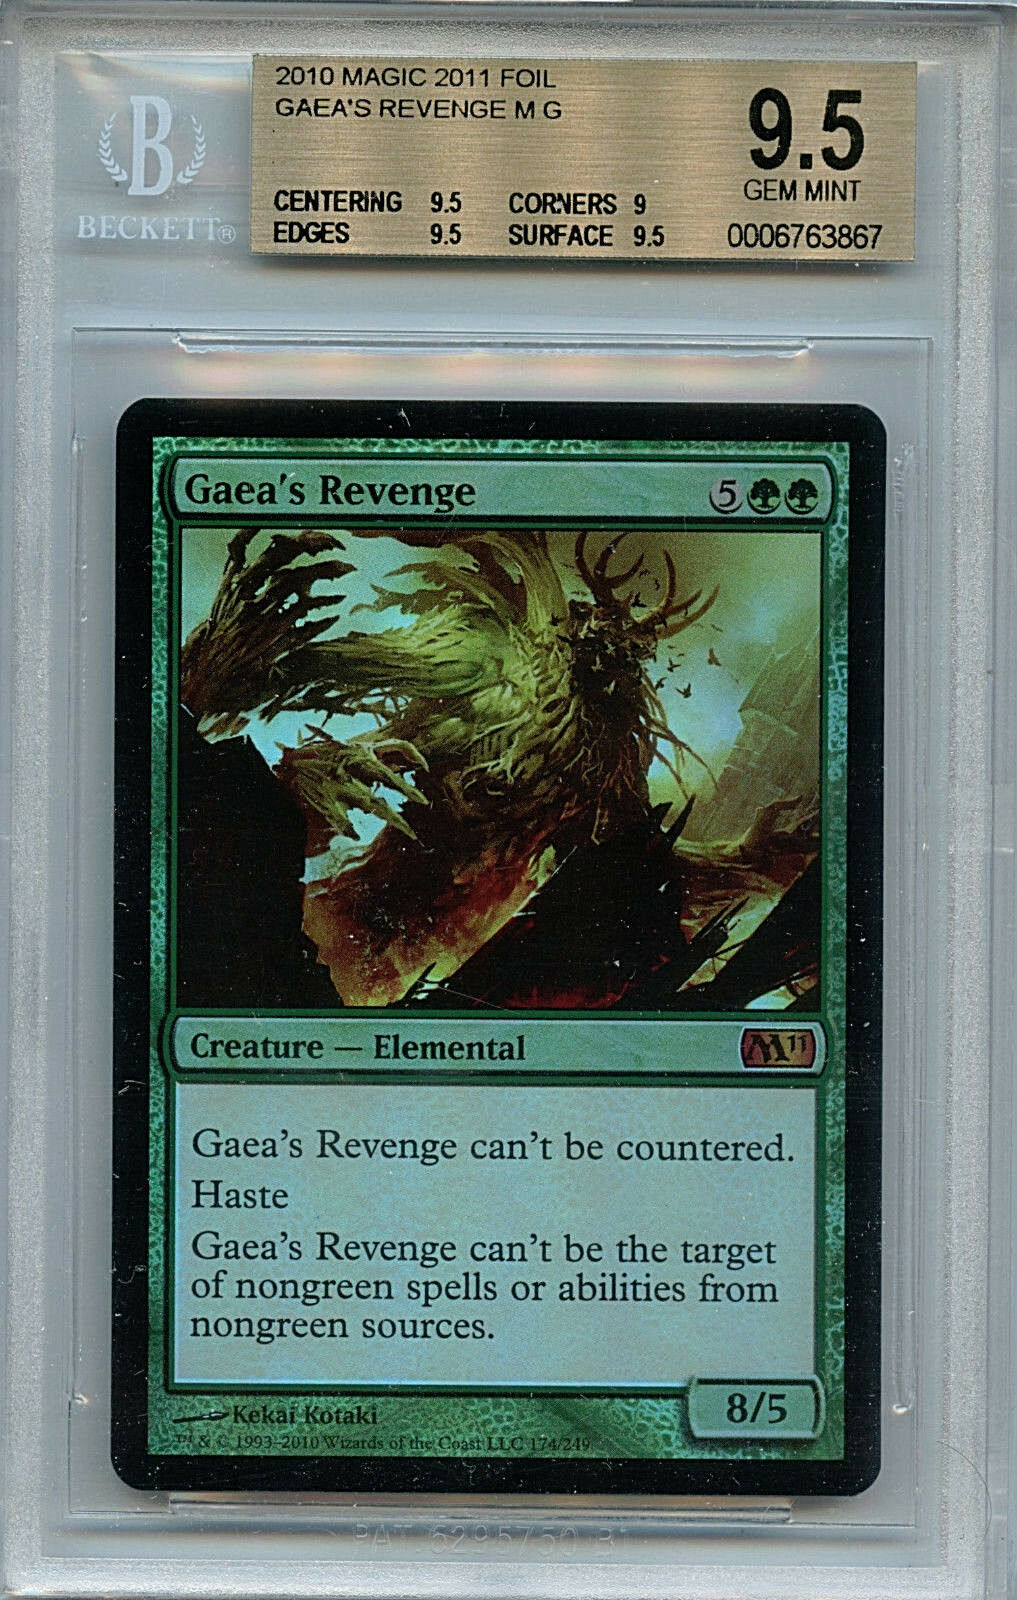 MTG Gaea's Revenge BGS 9.5 Gem Mint 2010 Magic 2011 Magic Foil card Amricons